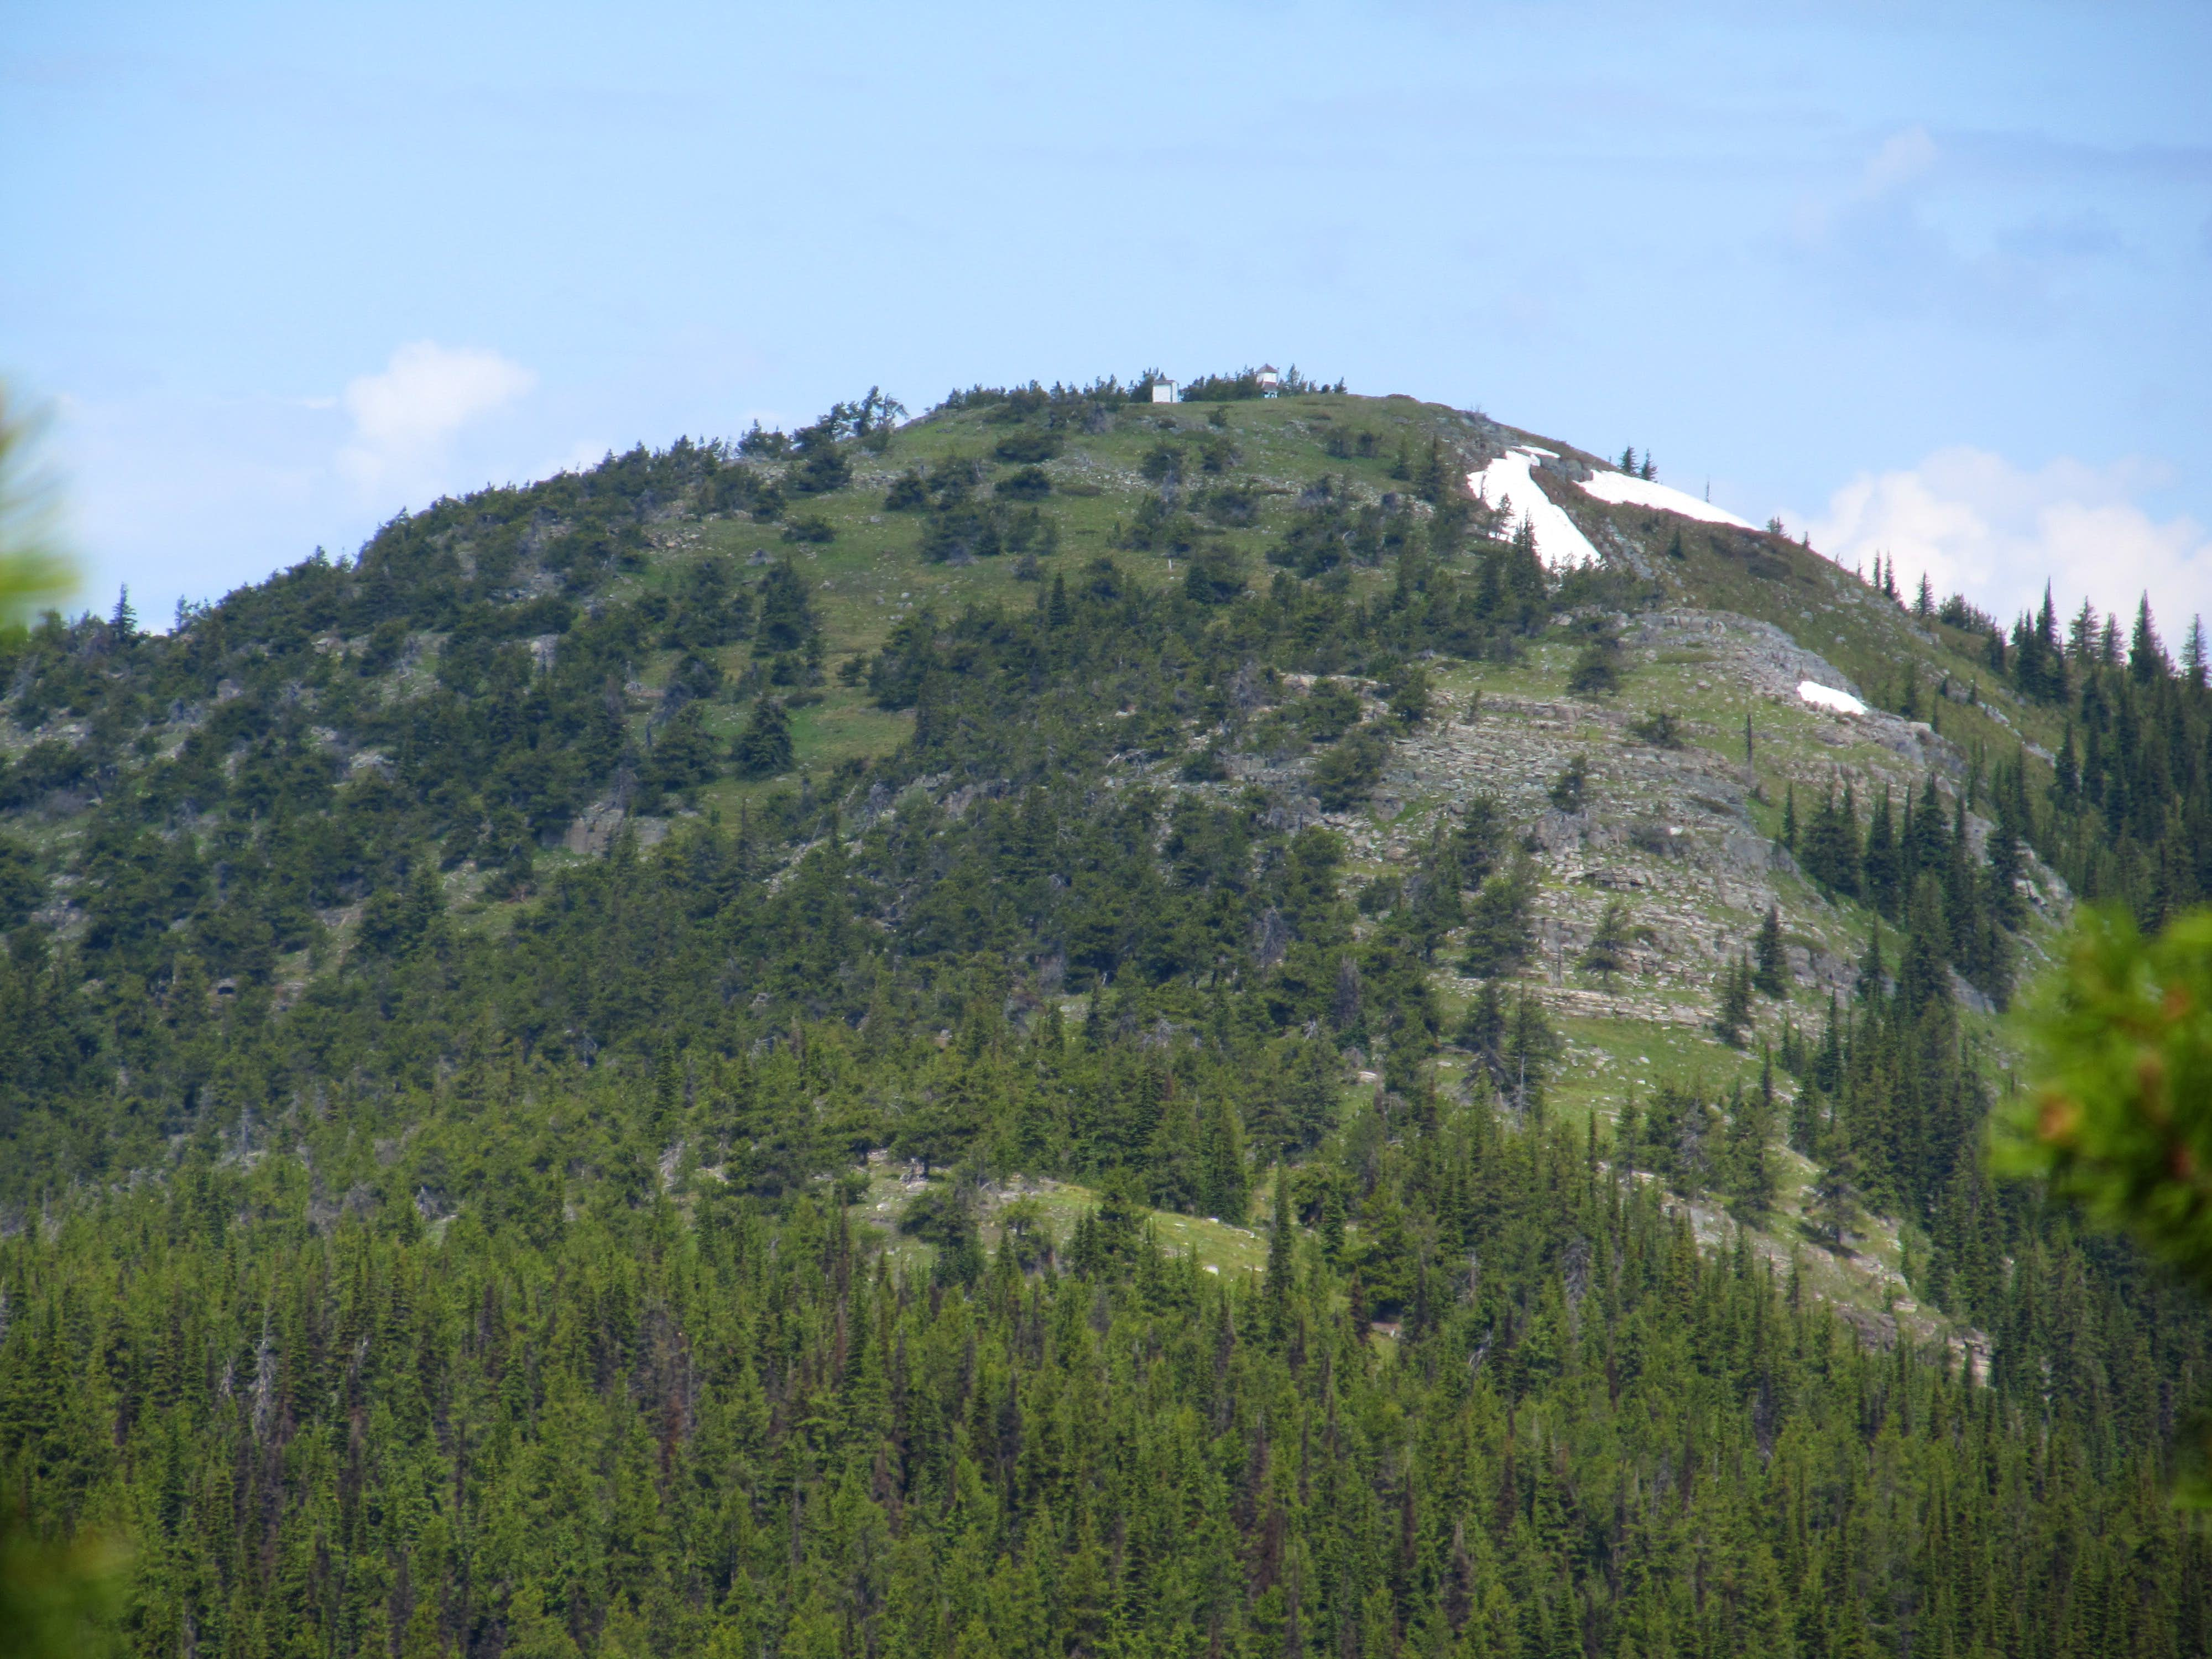 McGuire Mountain and Lookout